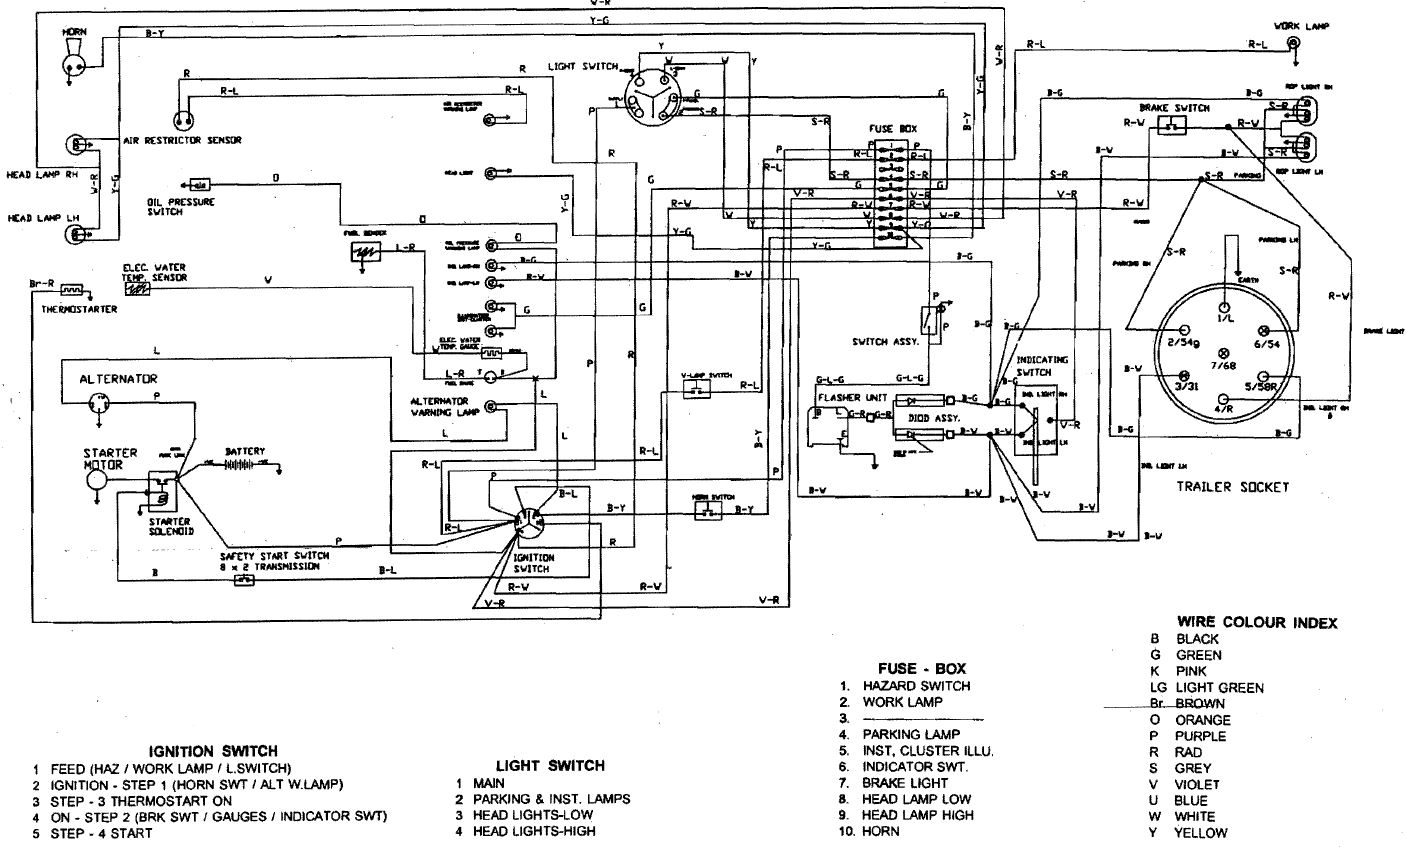 La115 Wiring Diagram | Wiring Schematic Diagram on